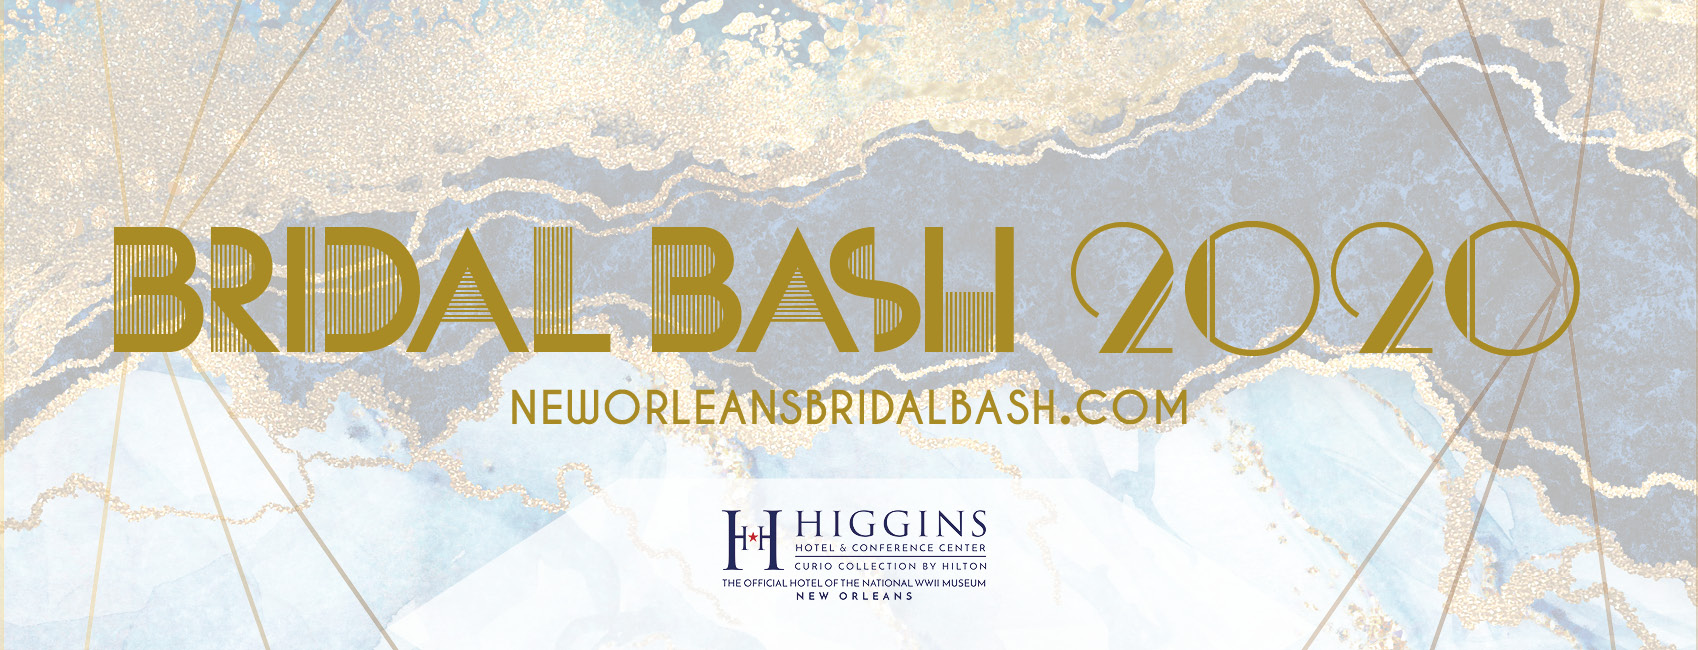 Events In New Orleans March 2020.Bridal Bash 2020 At The Higgins Hotel Nola 3 11 20